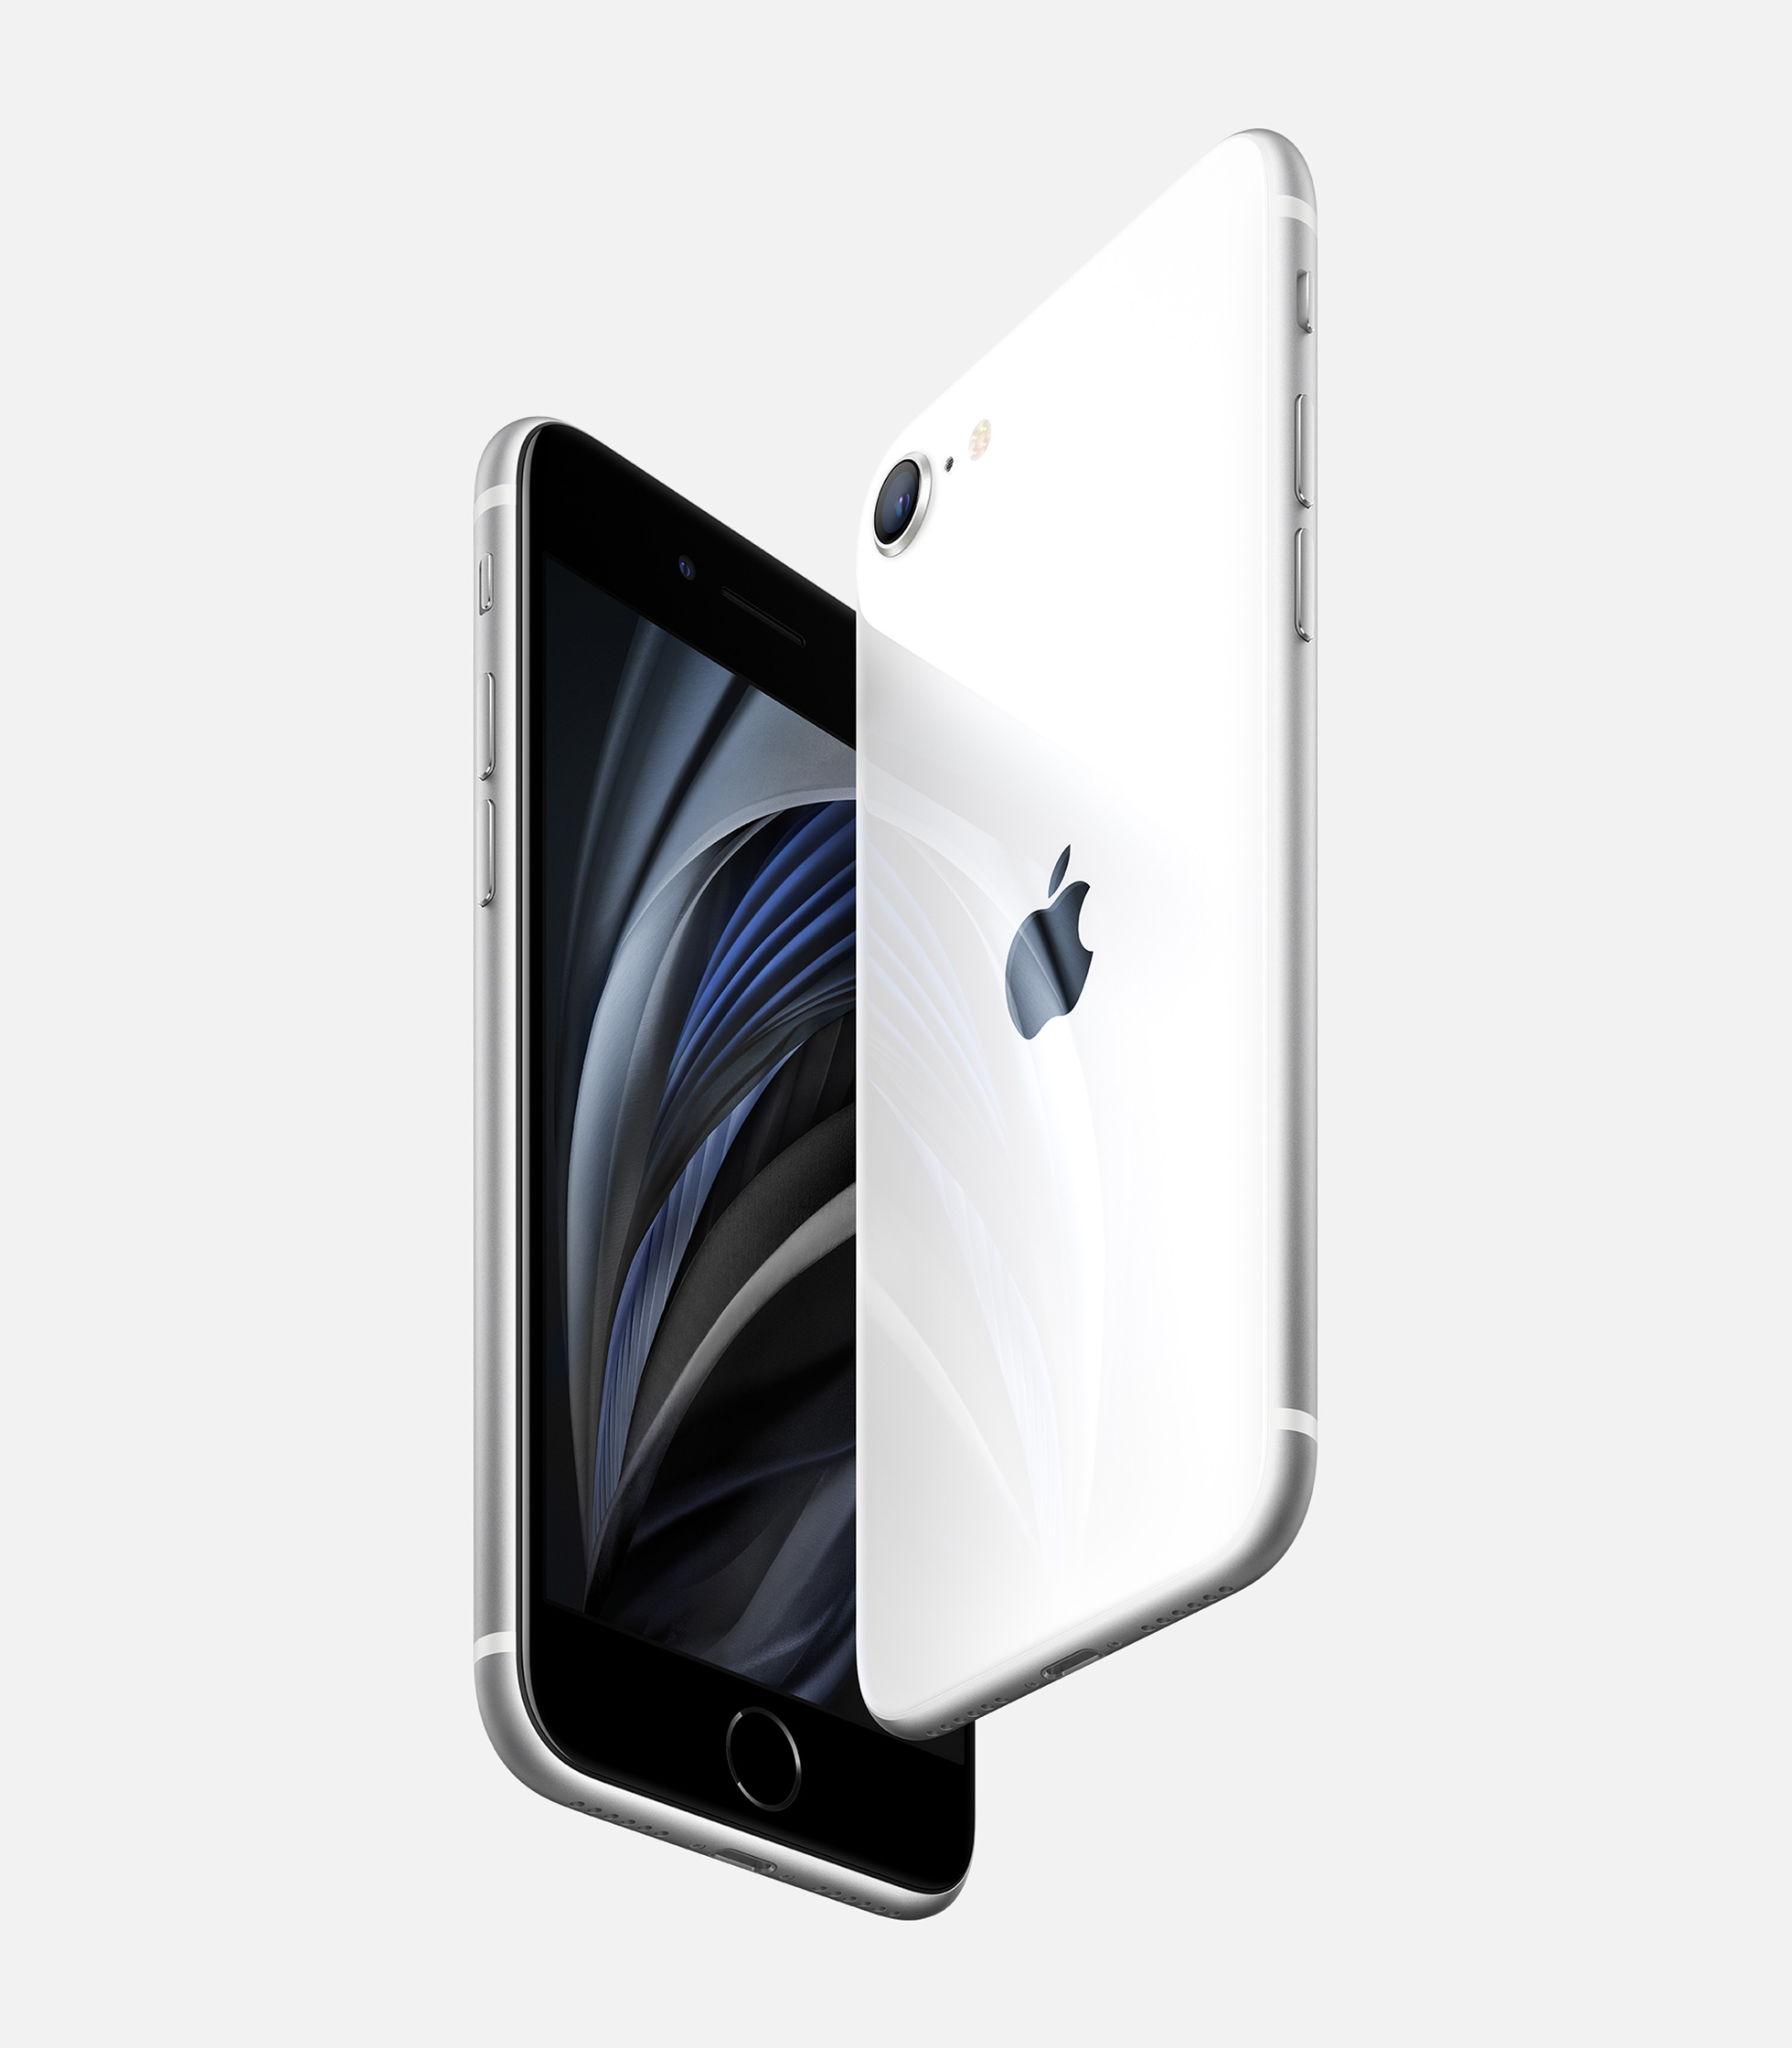 Apple_new-iphone-se-white_04152020_big.jpg.large_2x.jpg (1960×2240)